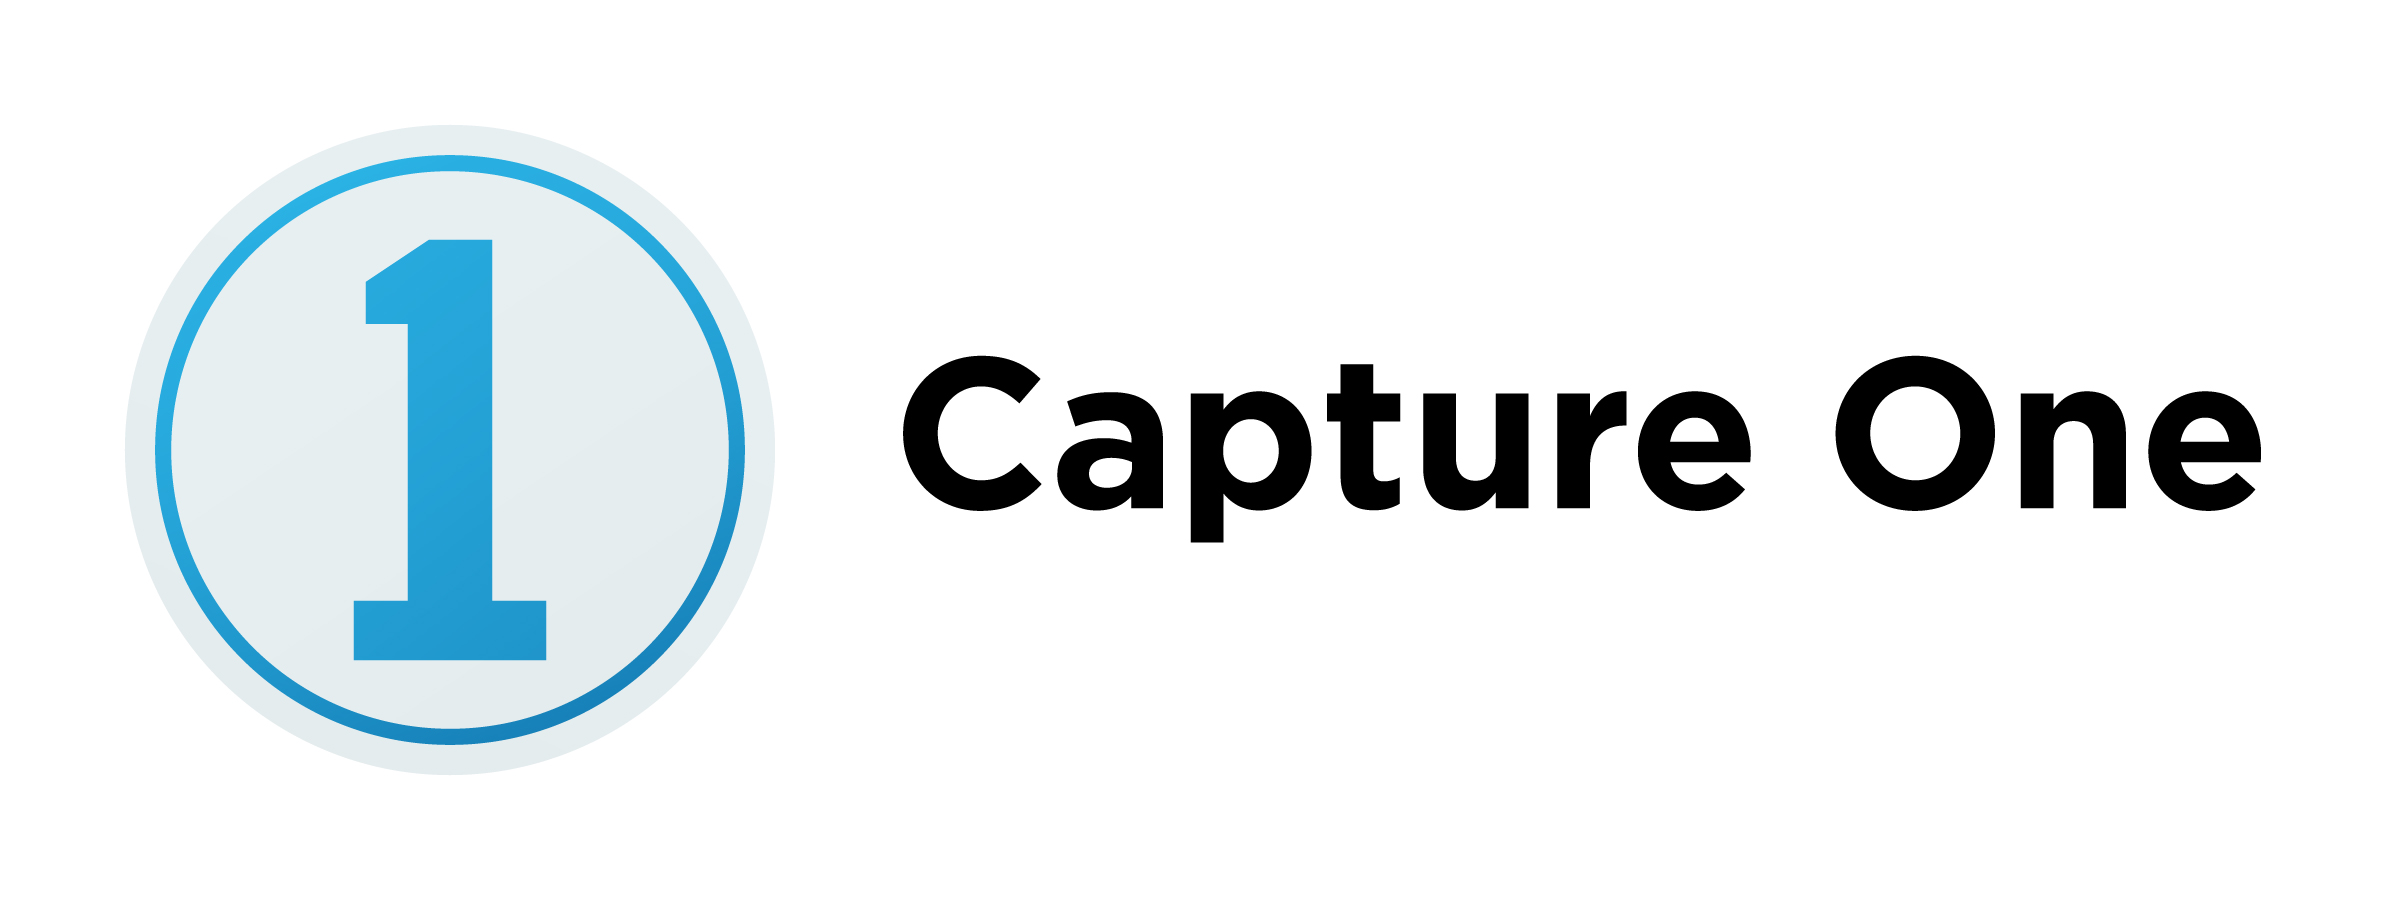 Capture One Help Center home page